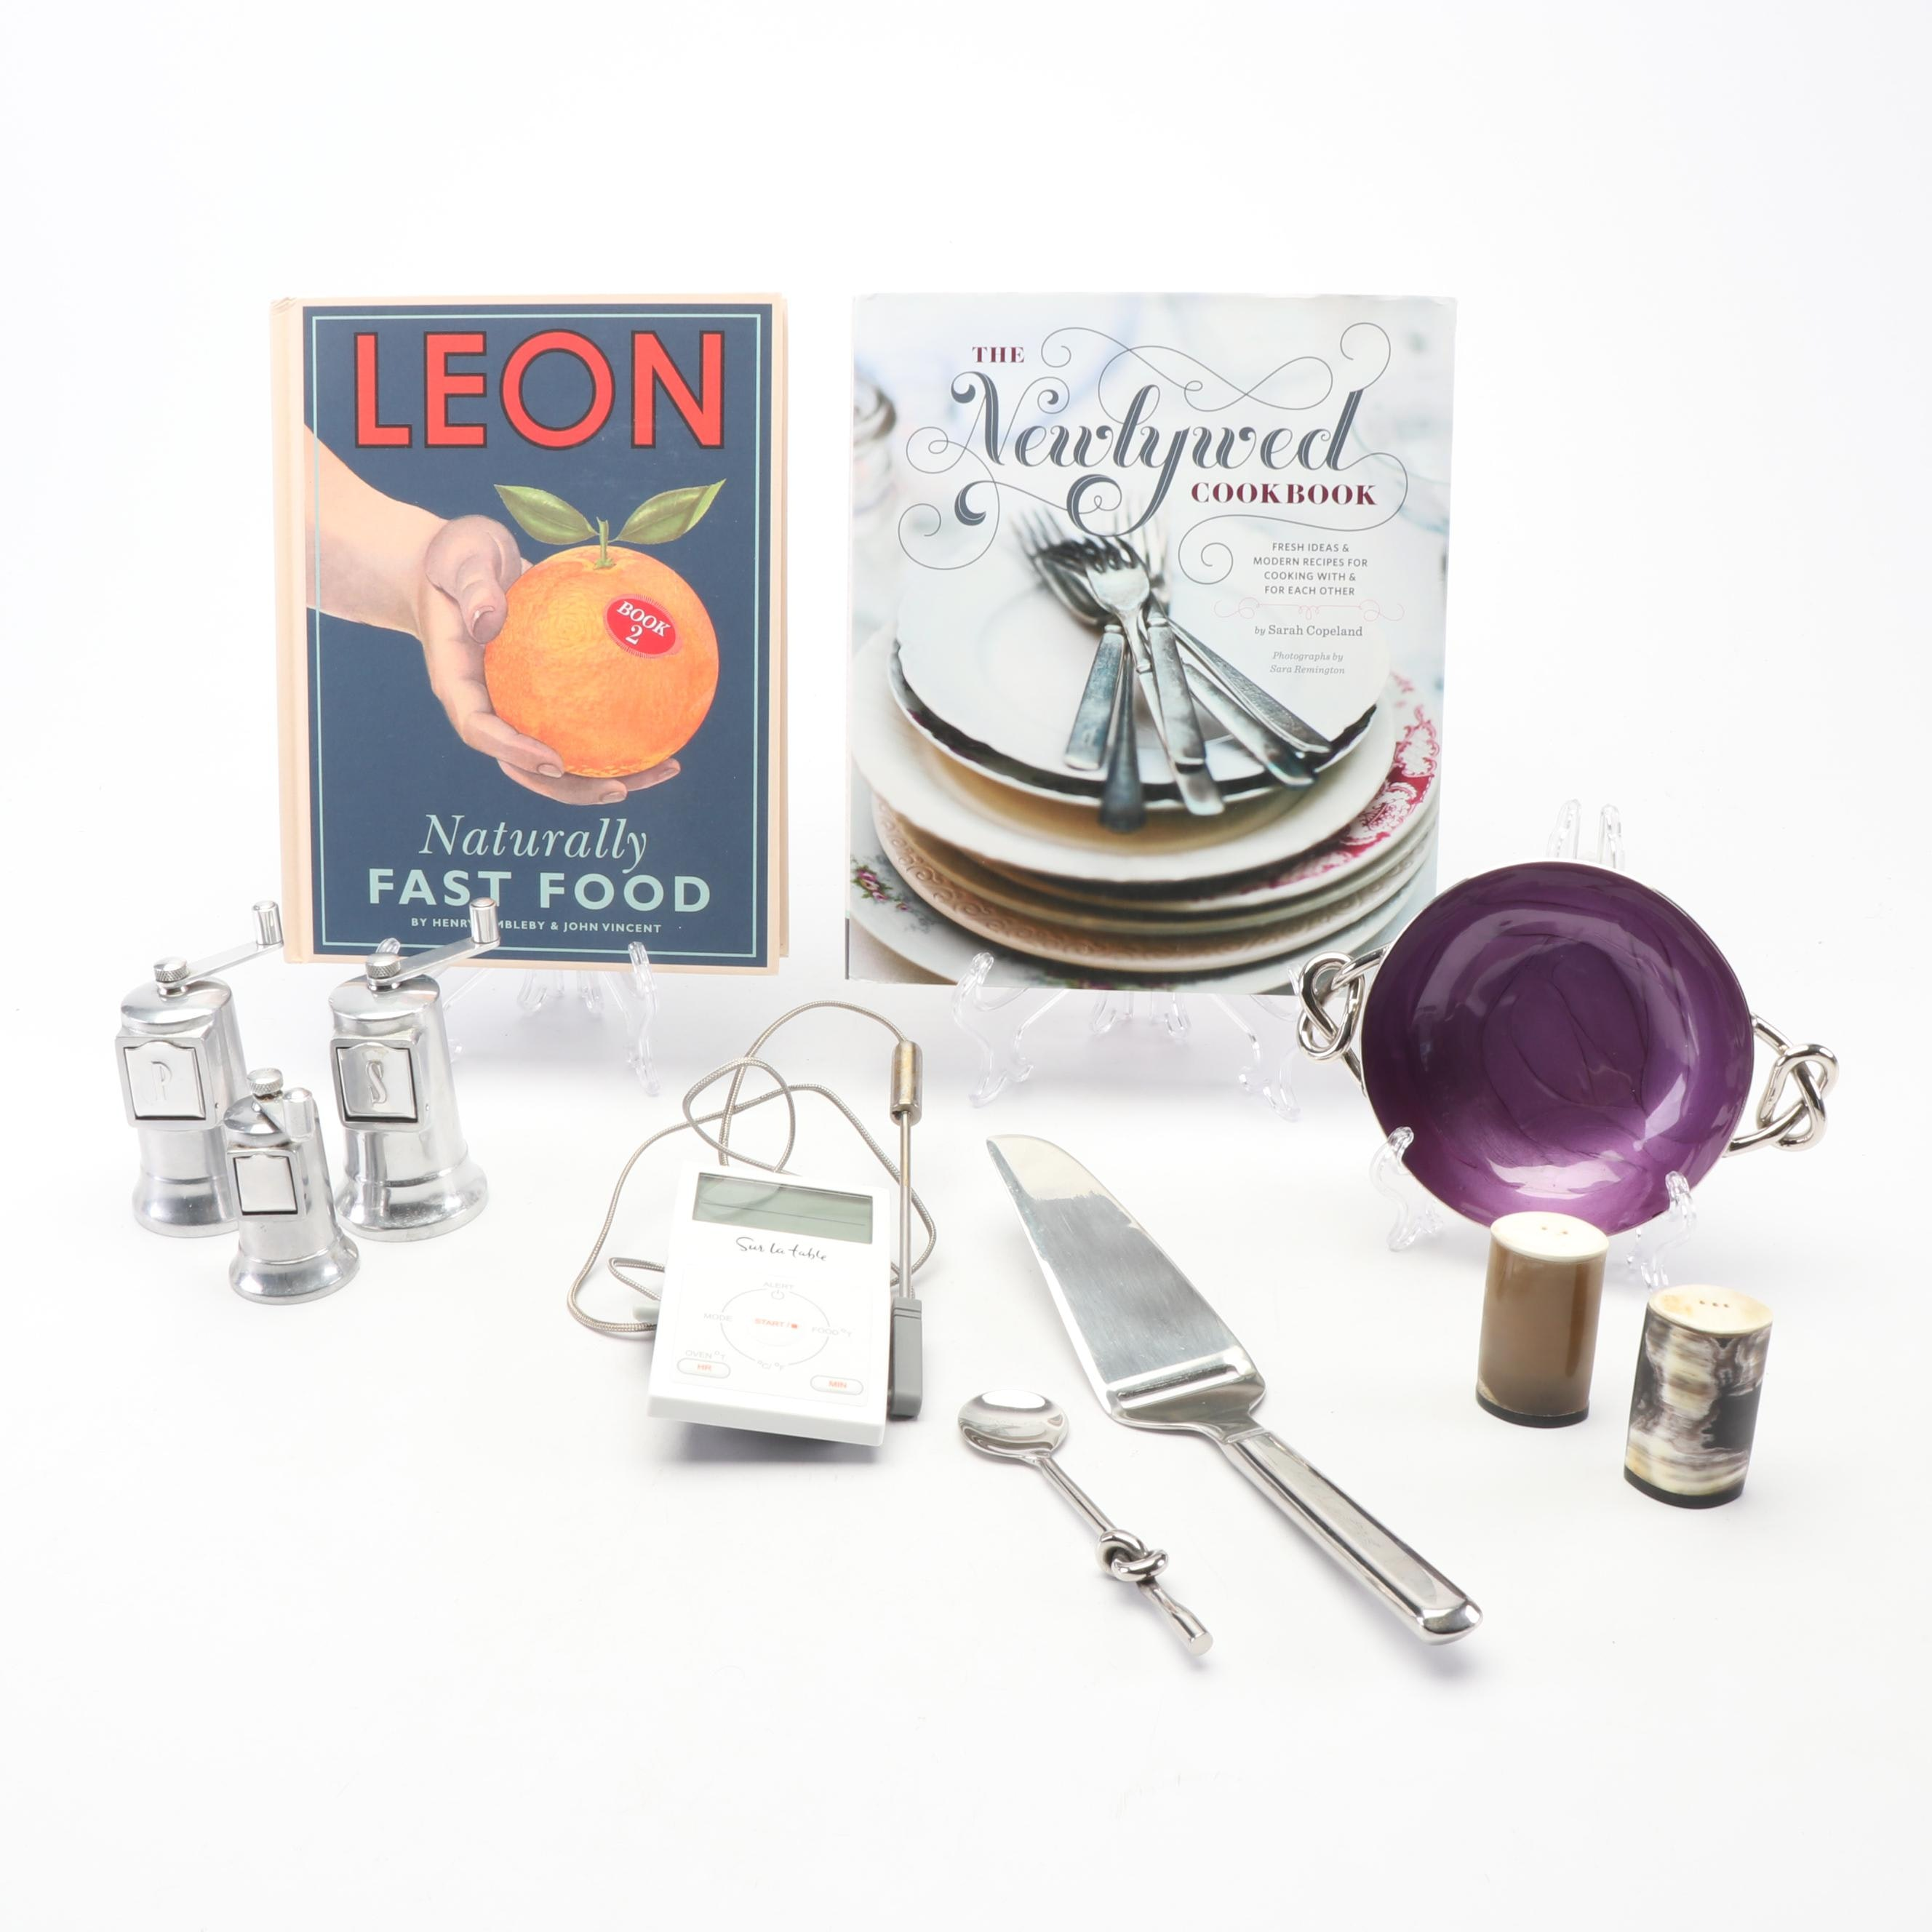 Perfex Salt and Pepper Mills, Inspired Generations Tableware, Cookbooks and More